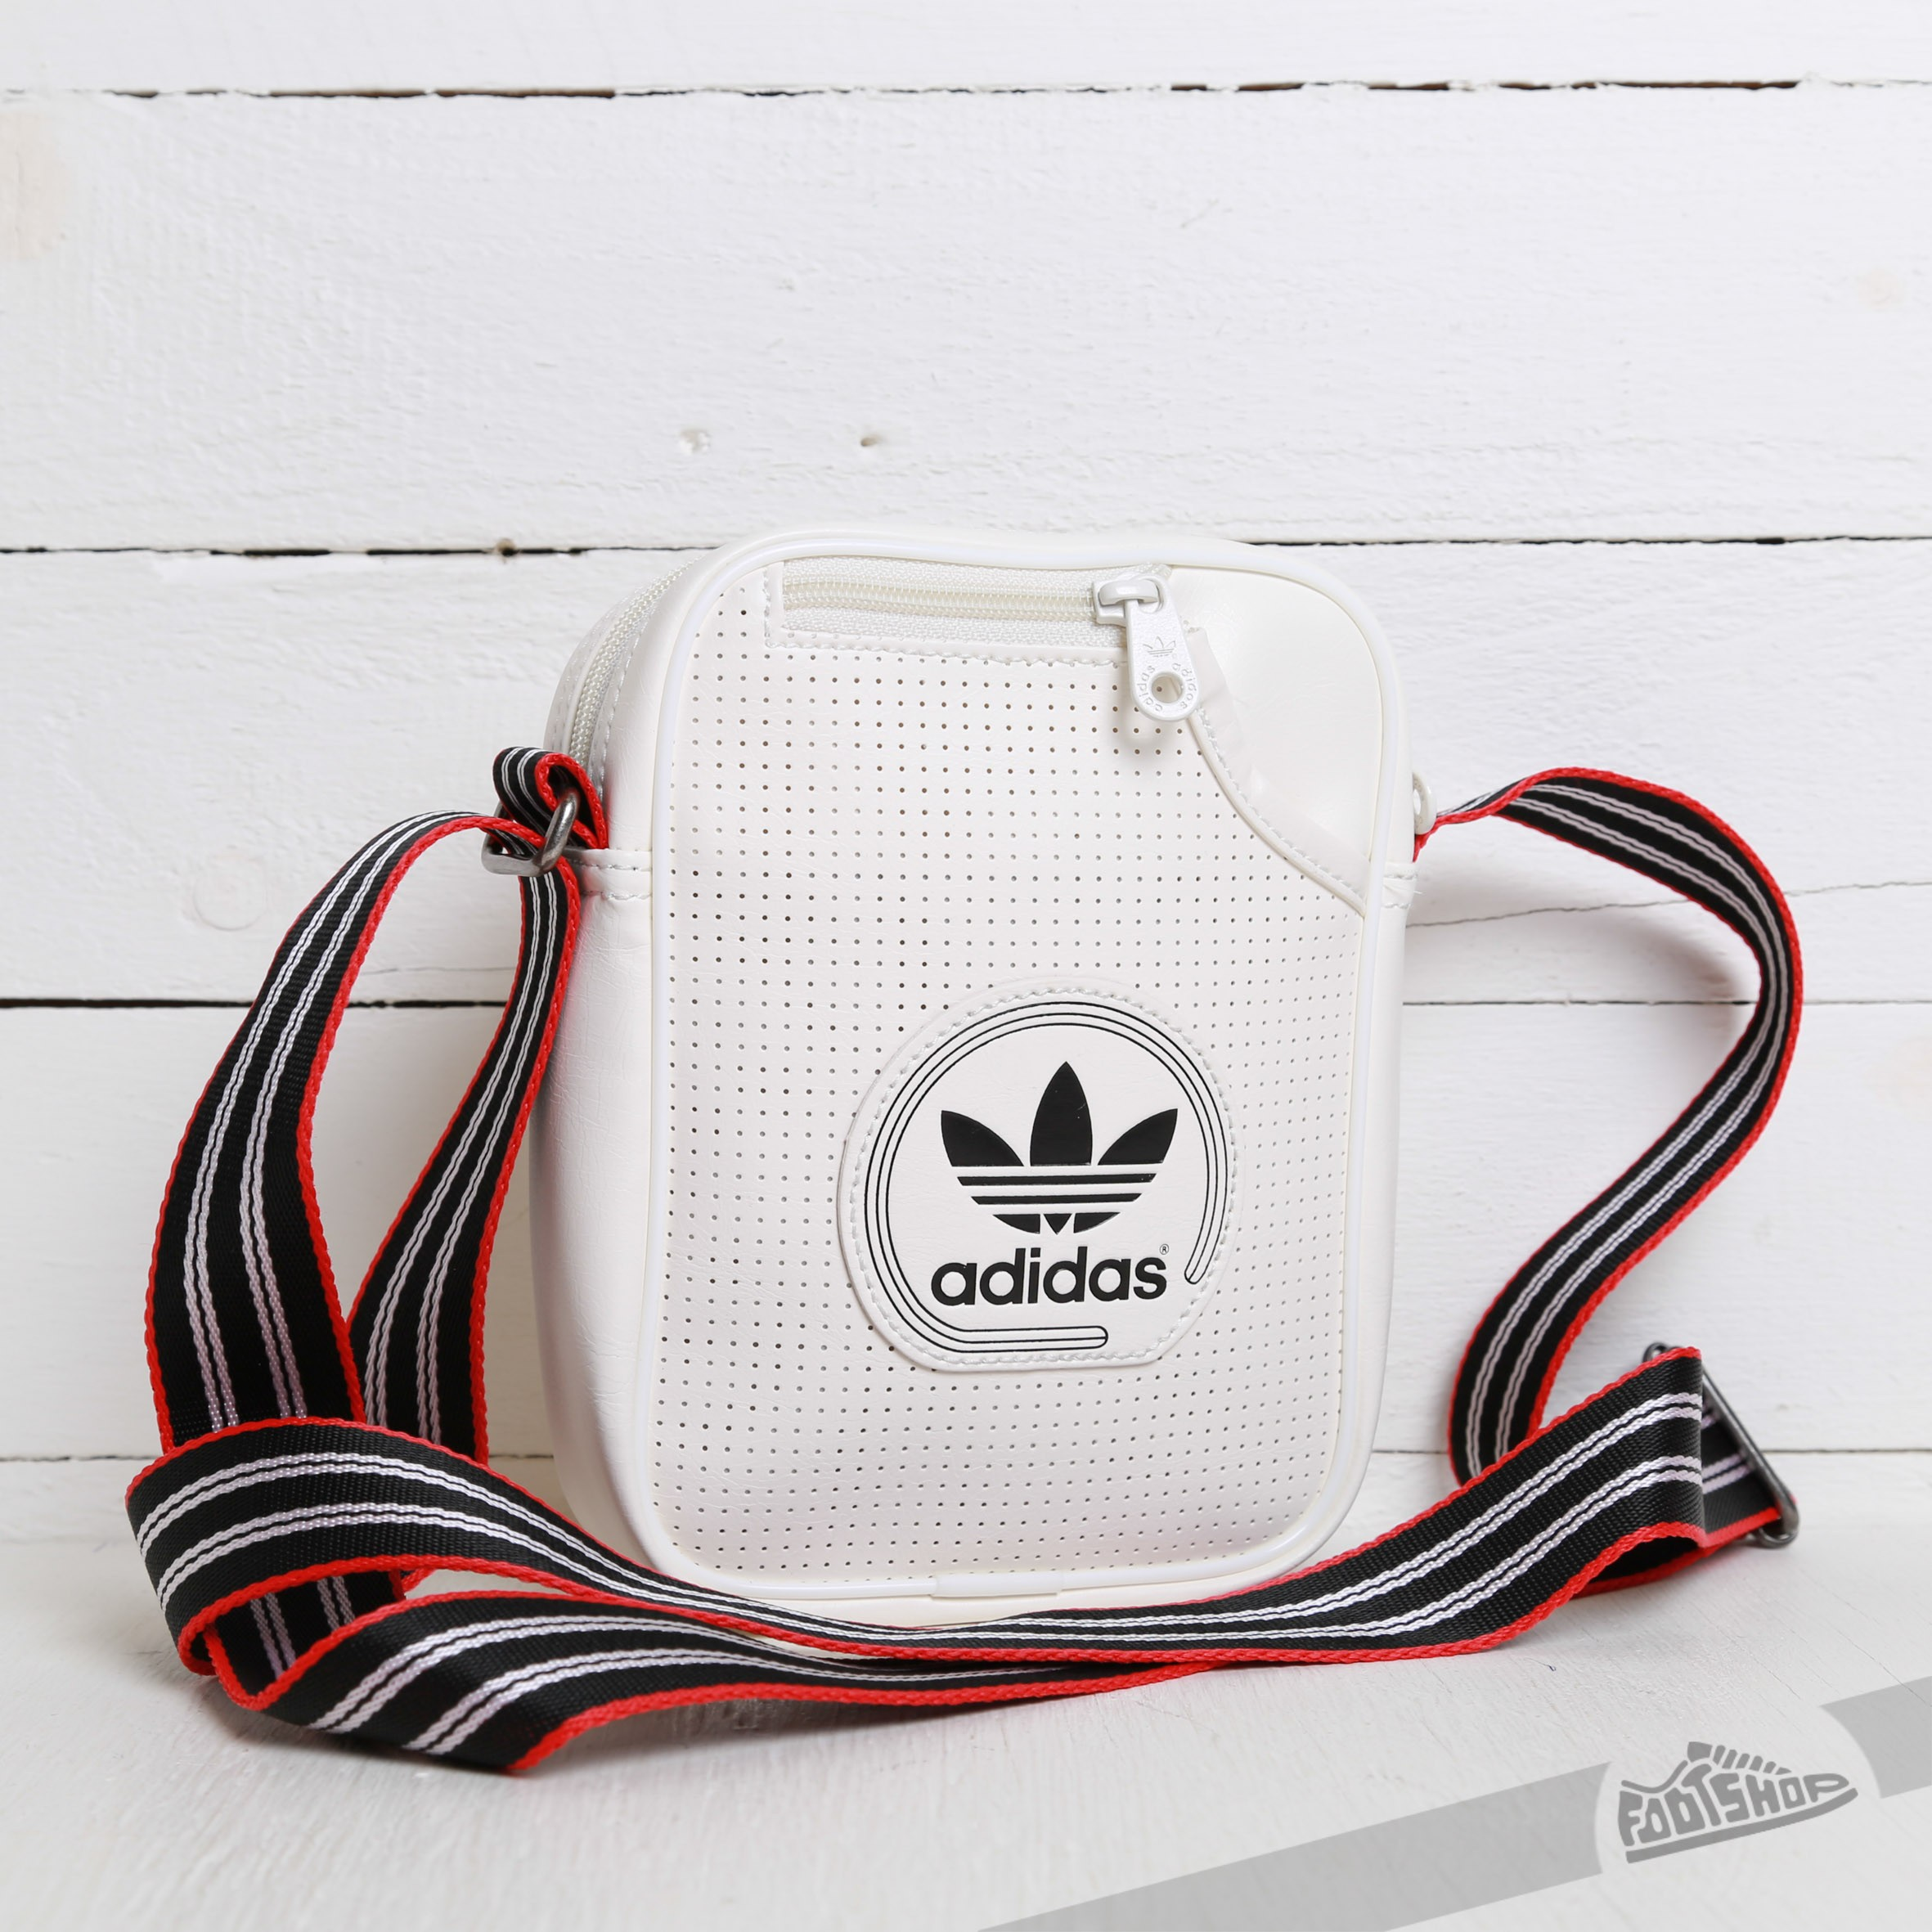 adidas Mini Bag Perf Corewhite  Black  7894a85bef681